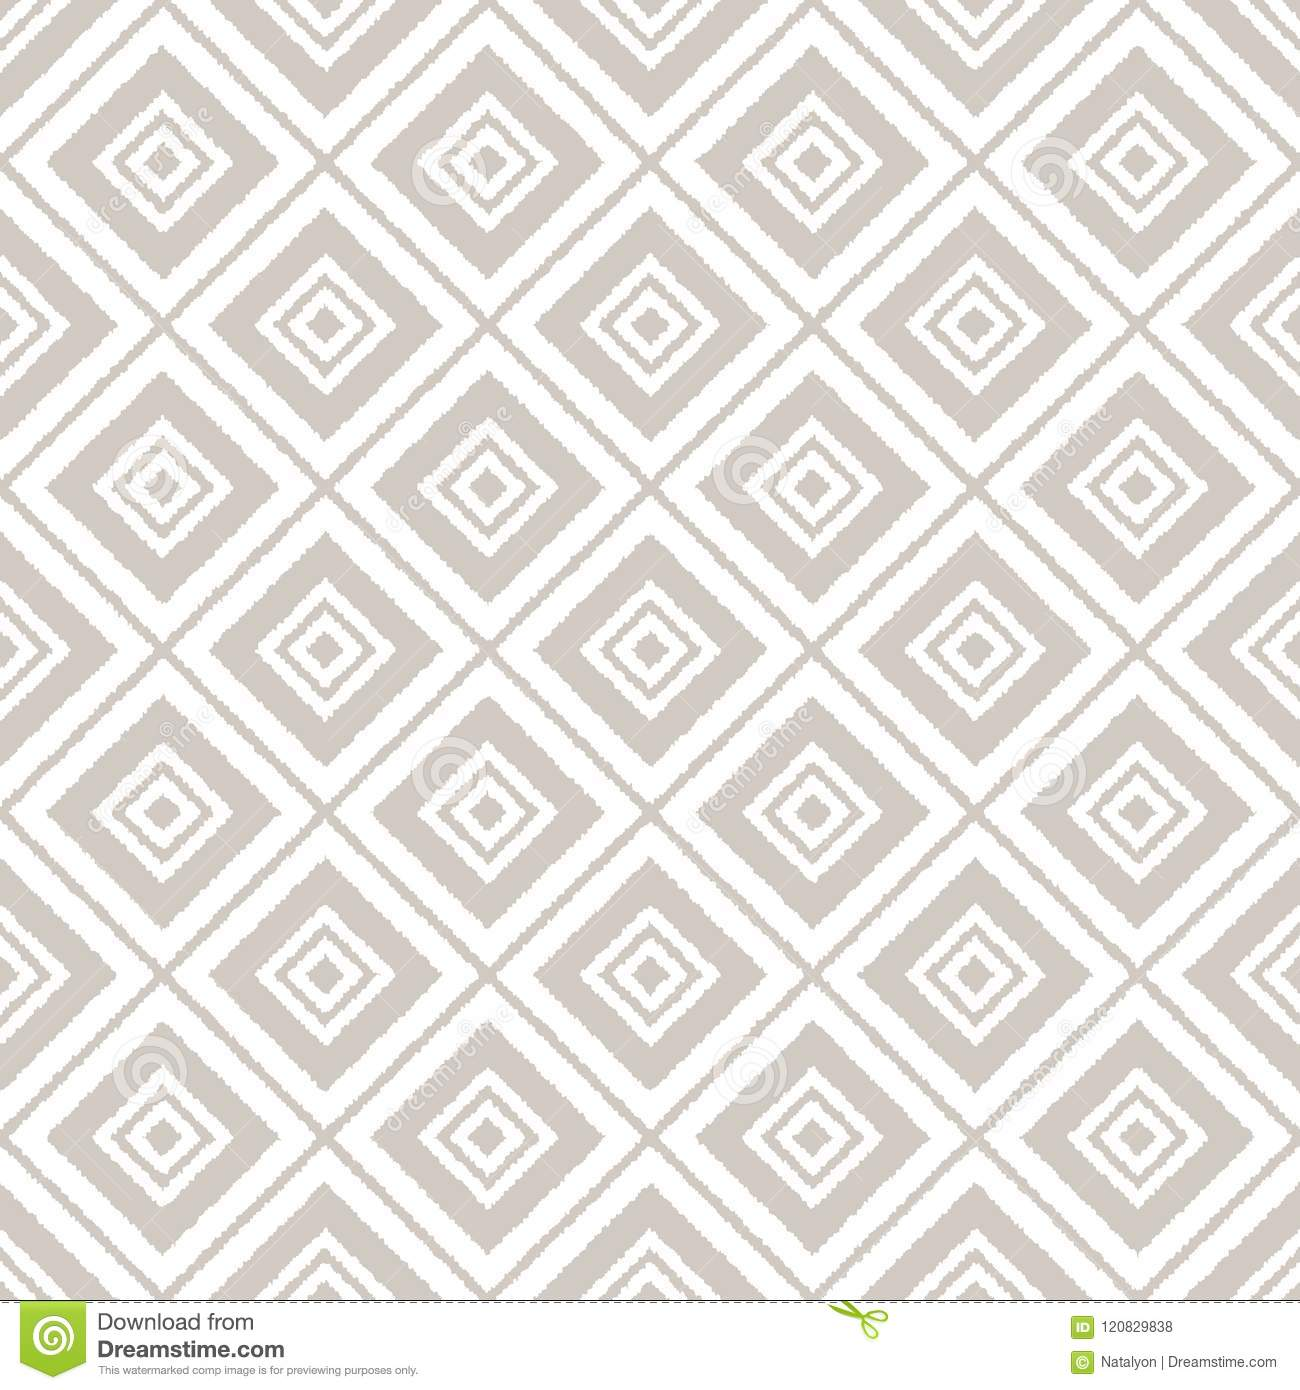 Gray and white ikat ornament geometric abstract fabric seamless pattern, vector